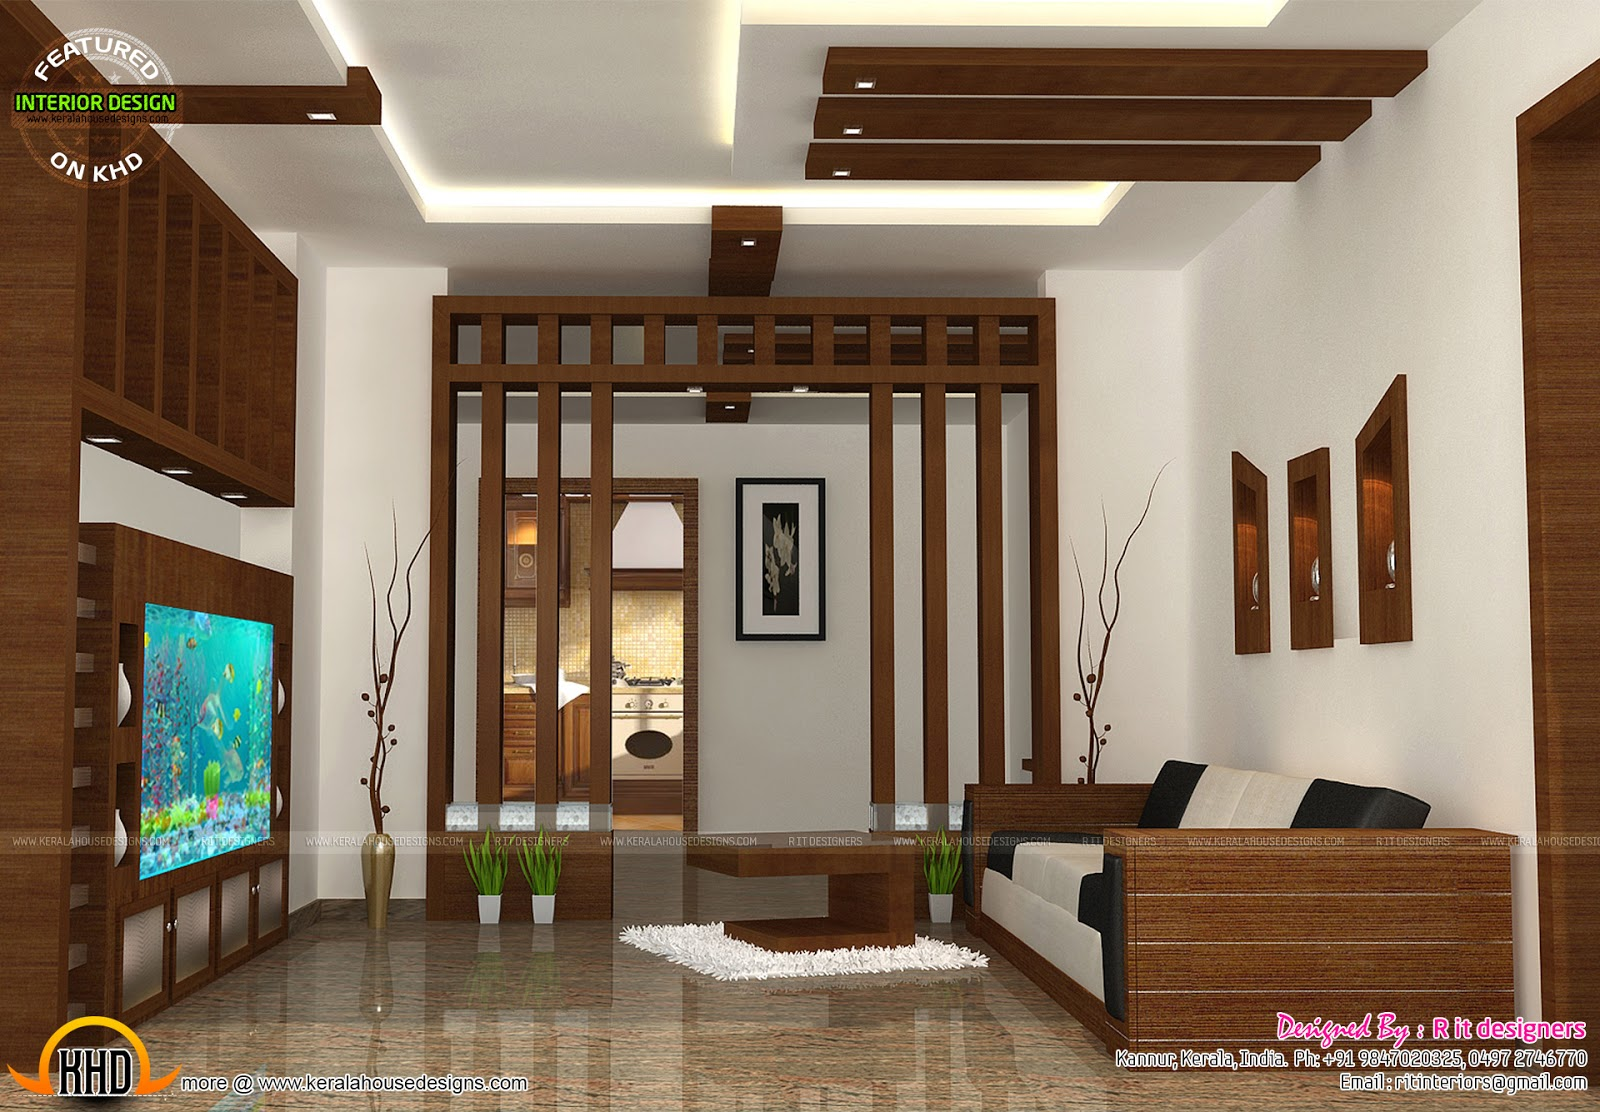 Wooden finish interiors kerala home design and floor plans for Small indian house interior design photos